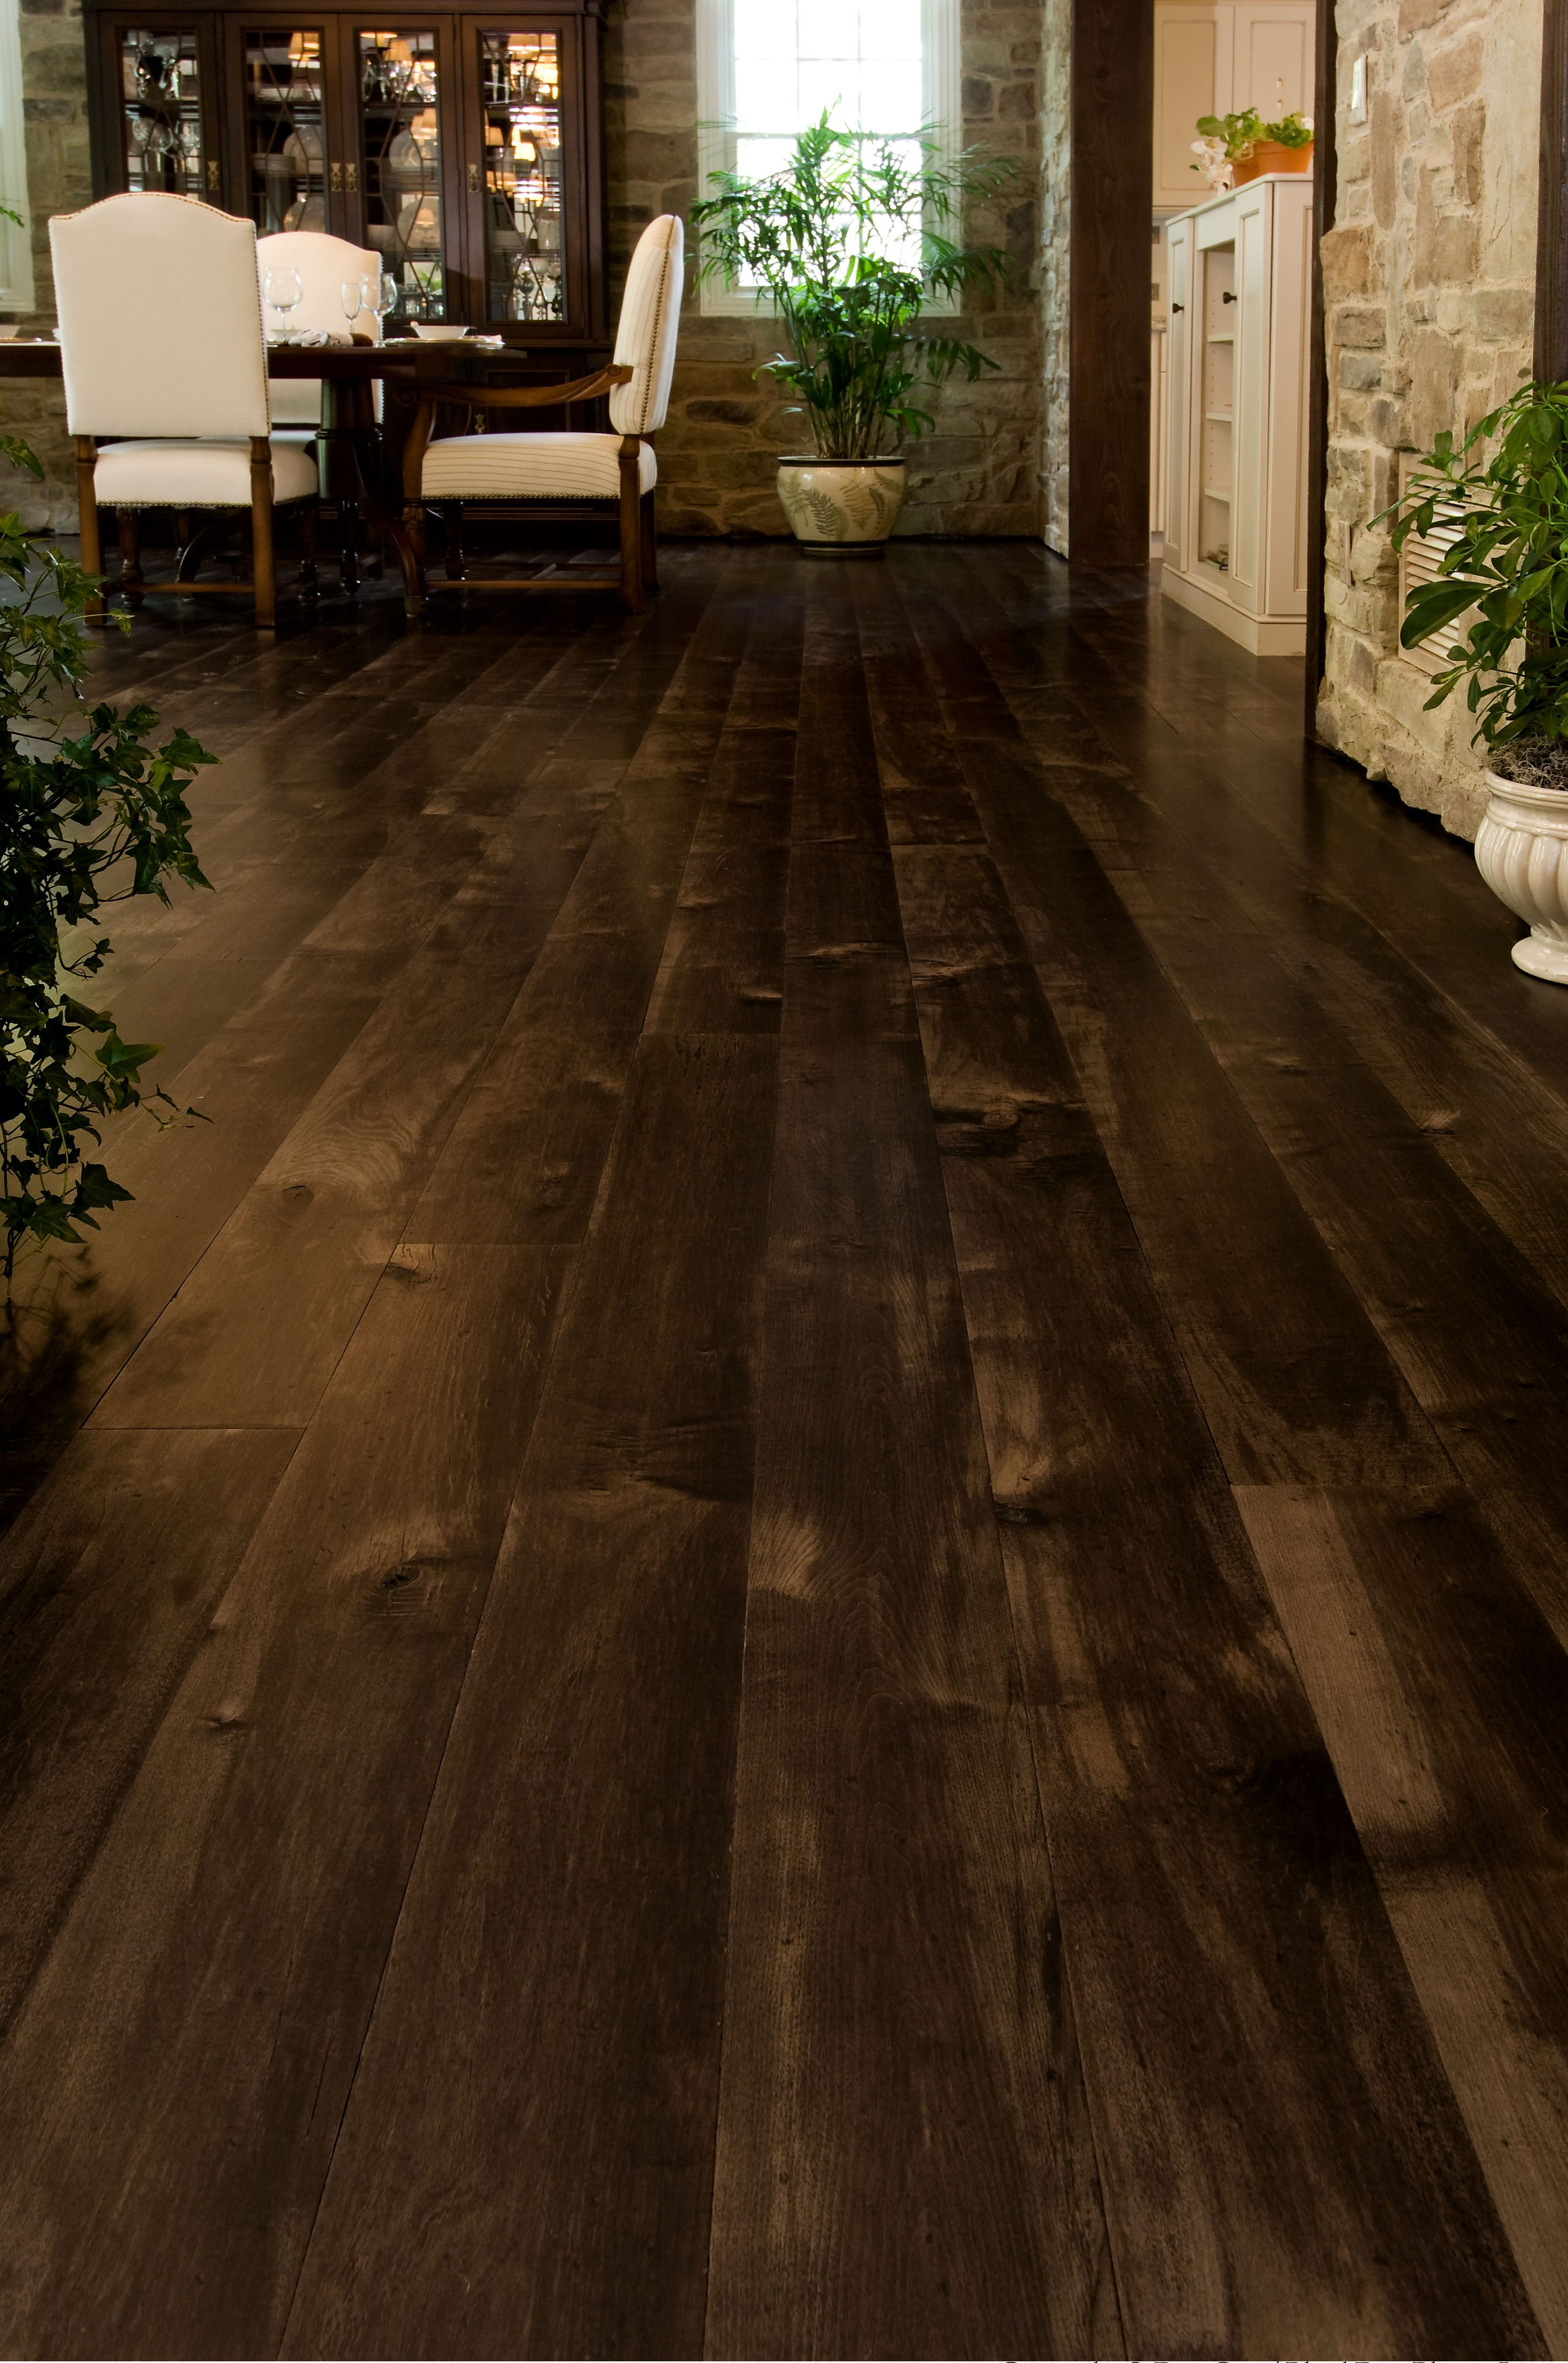 Brown Maple Wood Floors In A Dining Room